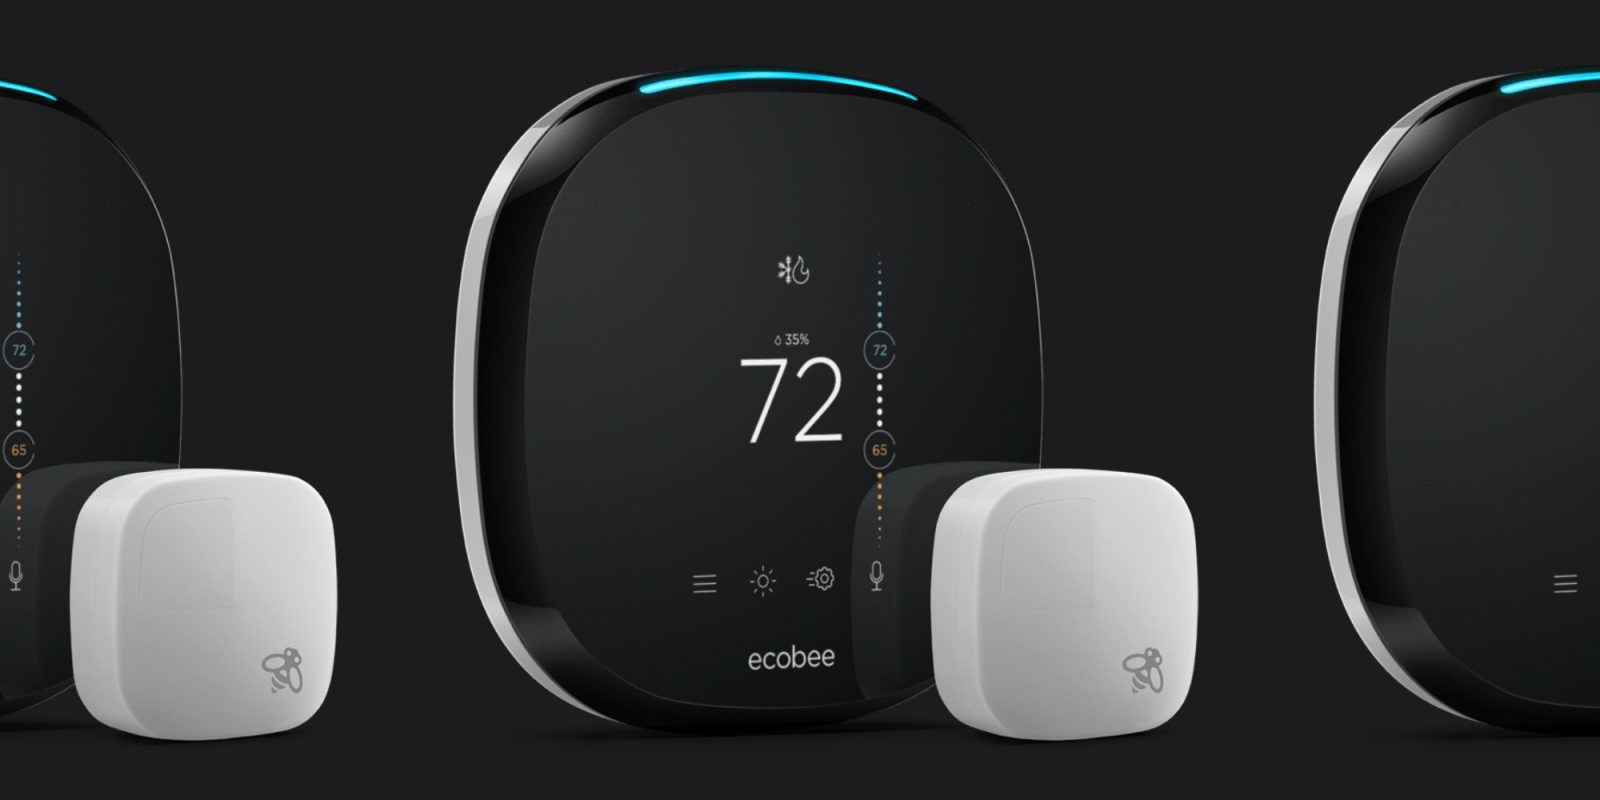 HomeKit control, scheduling, more land on ecobee4 Smart Thermostat at $179.50